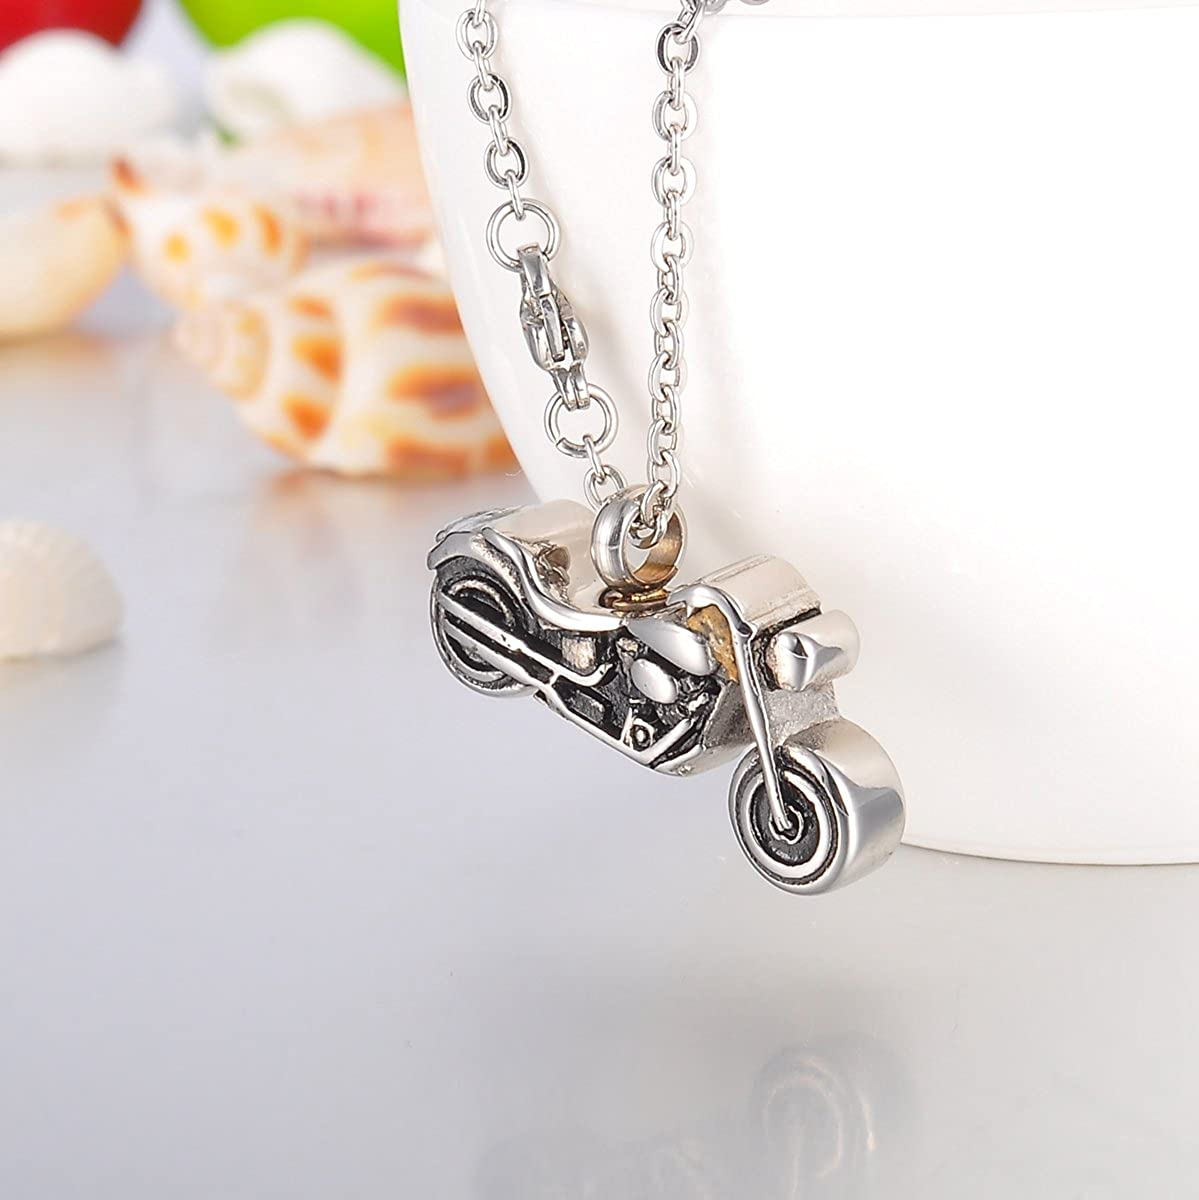 Valyria Motorcycle Cremation Urn Necklace Keepsake Ashes Memorial Pendant with Engraving